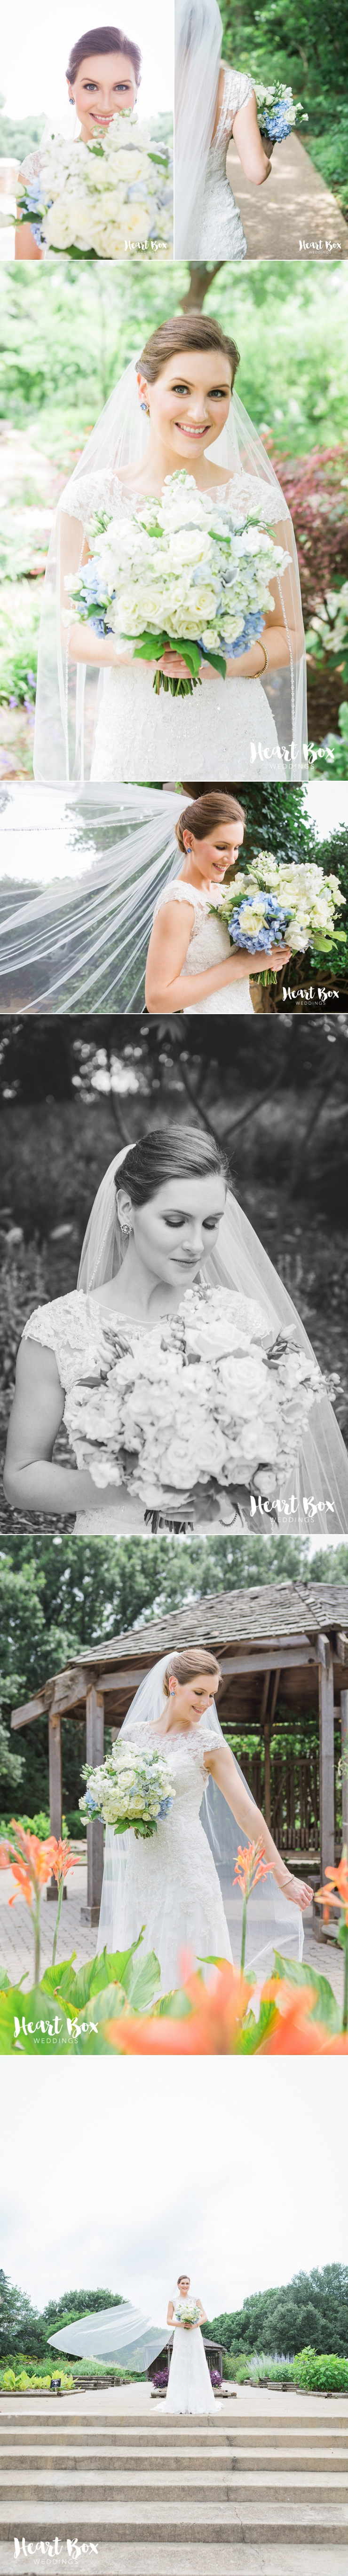 Mary Styrsky Bridal Collages 6.jpg